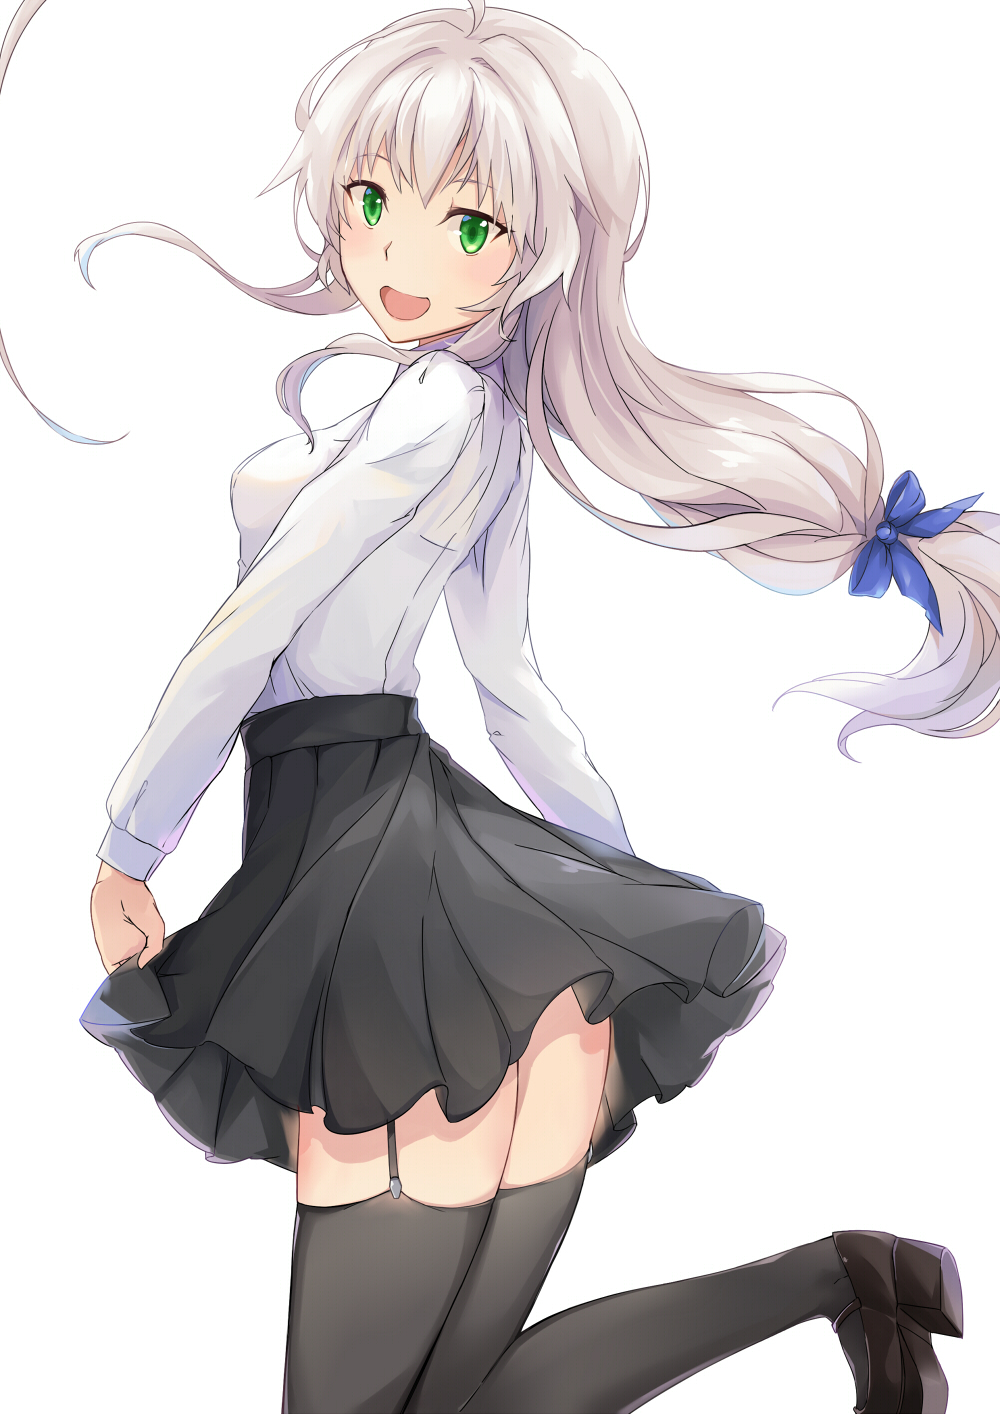 1girl :d ahoge black_legwear black_skirt blue_bow blush bow breasts brown_shoes garter_straps green_eyes grey_hair hair_bow haiyore!_nyaruko-san head_tilt highres huge_ahoge loafers long_hair long_sleeves low-tied_long_hair medium_breasts nyarlathotep_(nyaruko-san) open_mouth pleated_skirt powhway shirt shoes simple_background skirt skirt_hold smile solo thigh-highs very_long_hair white_background white_shirt